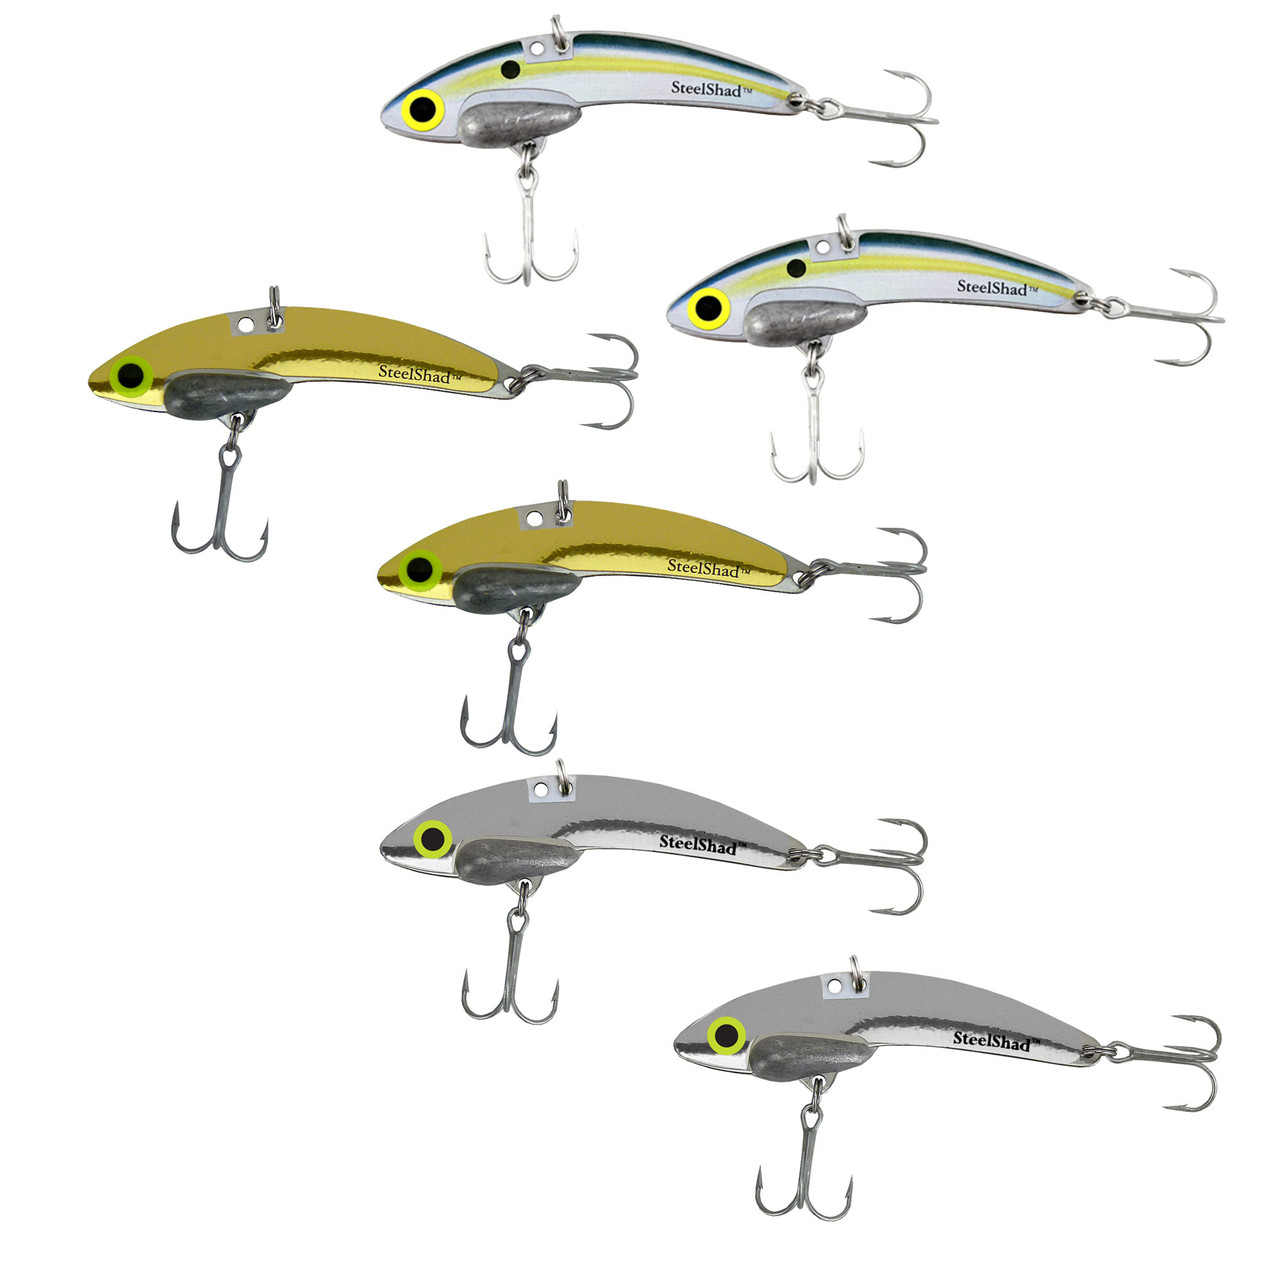 SteelShad Mini Madness 3 Pack